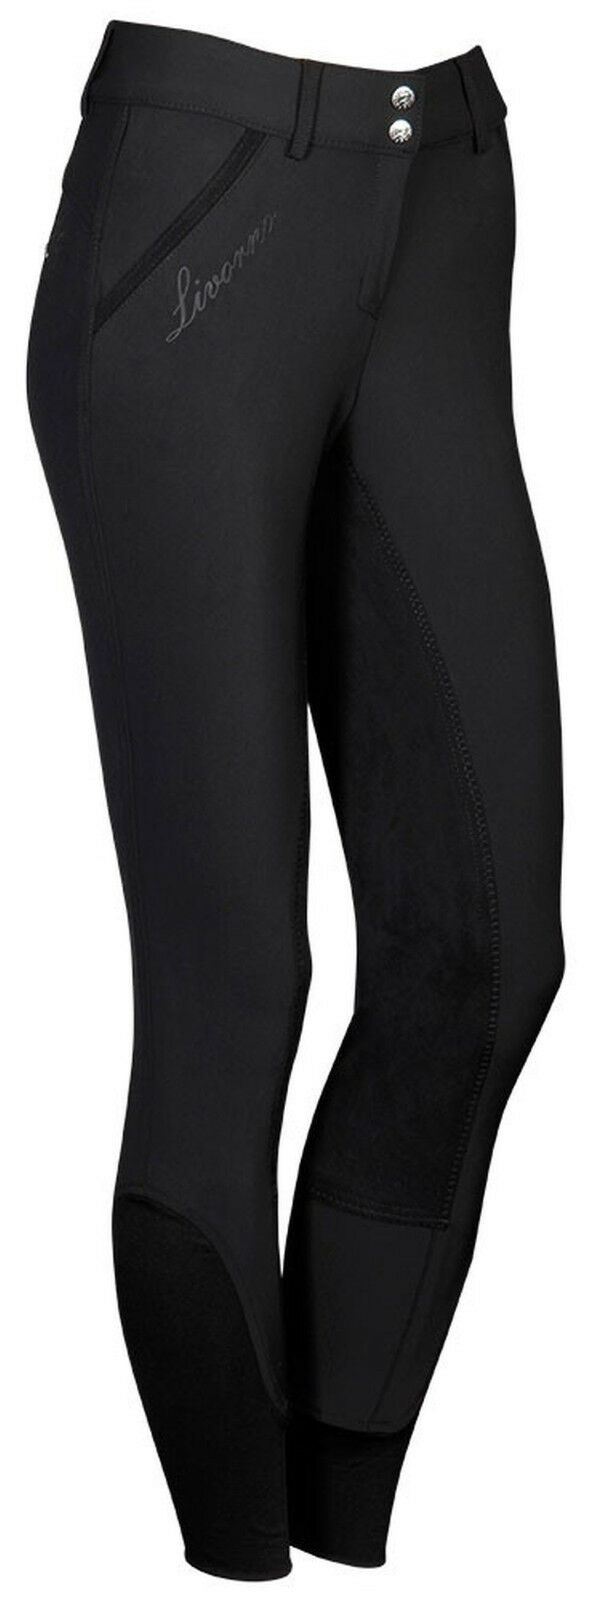 Harry's Horse Donna Pantaloni Montala Livorno PLUS guarnizione in pieno Ricami  Strass Nero